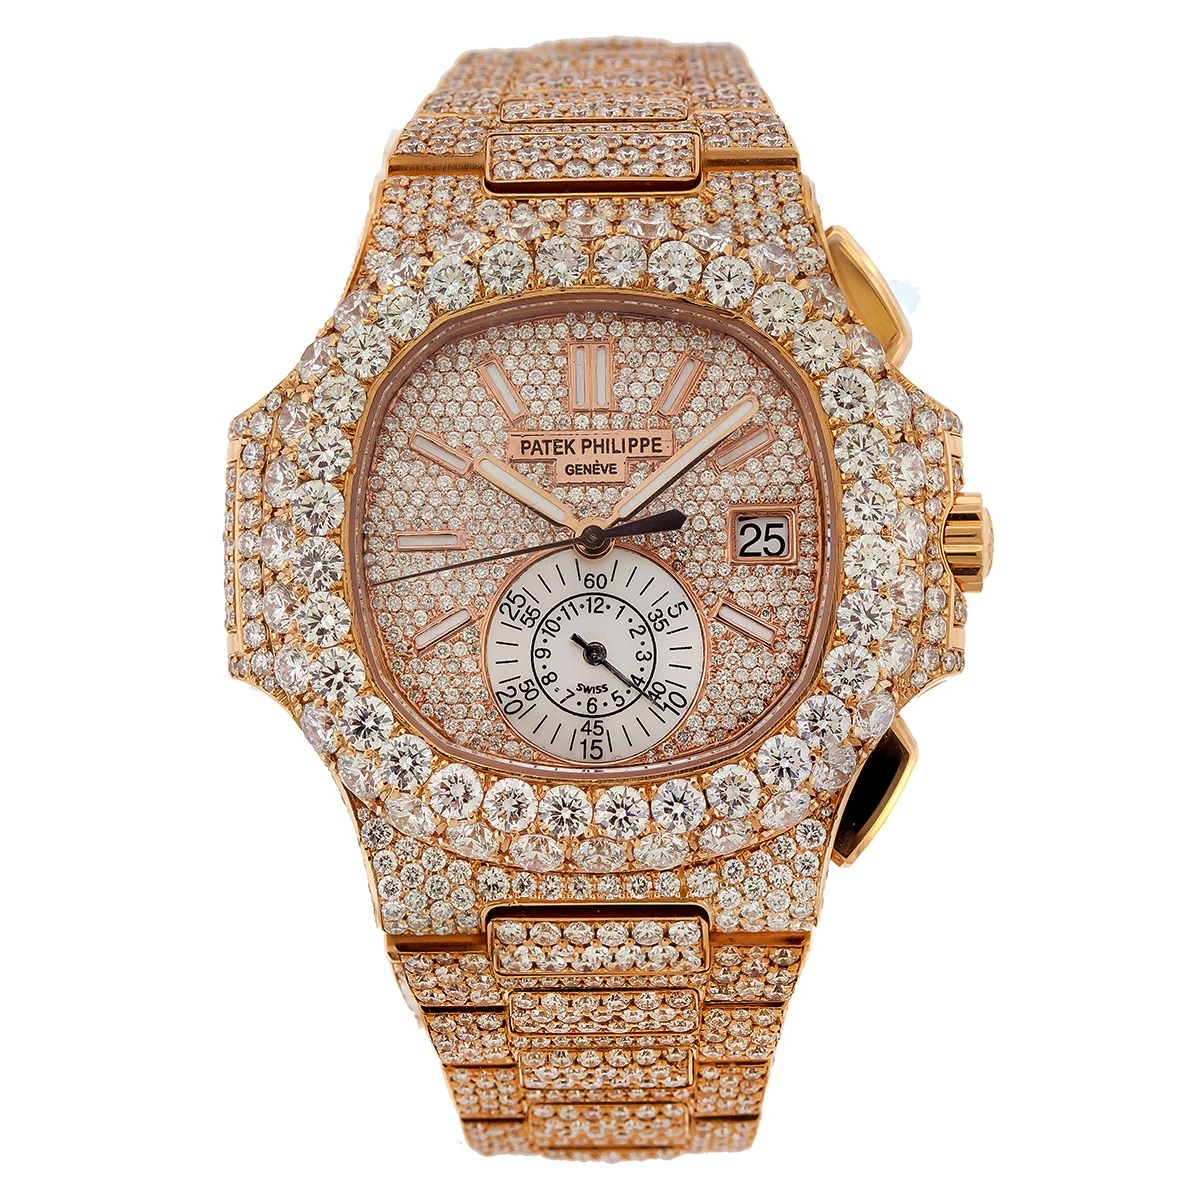 Fully Iced Out Patek Philippe Nautilus Diamond Watch for Men 18k Rose Gold 40.5mm Main Image